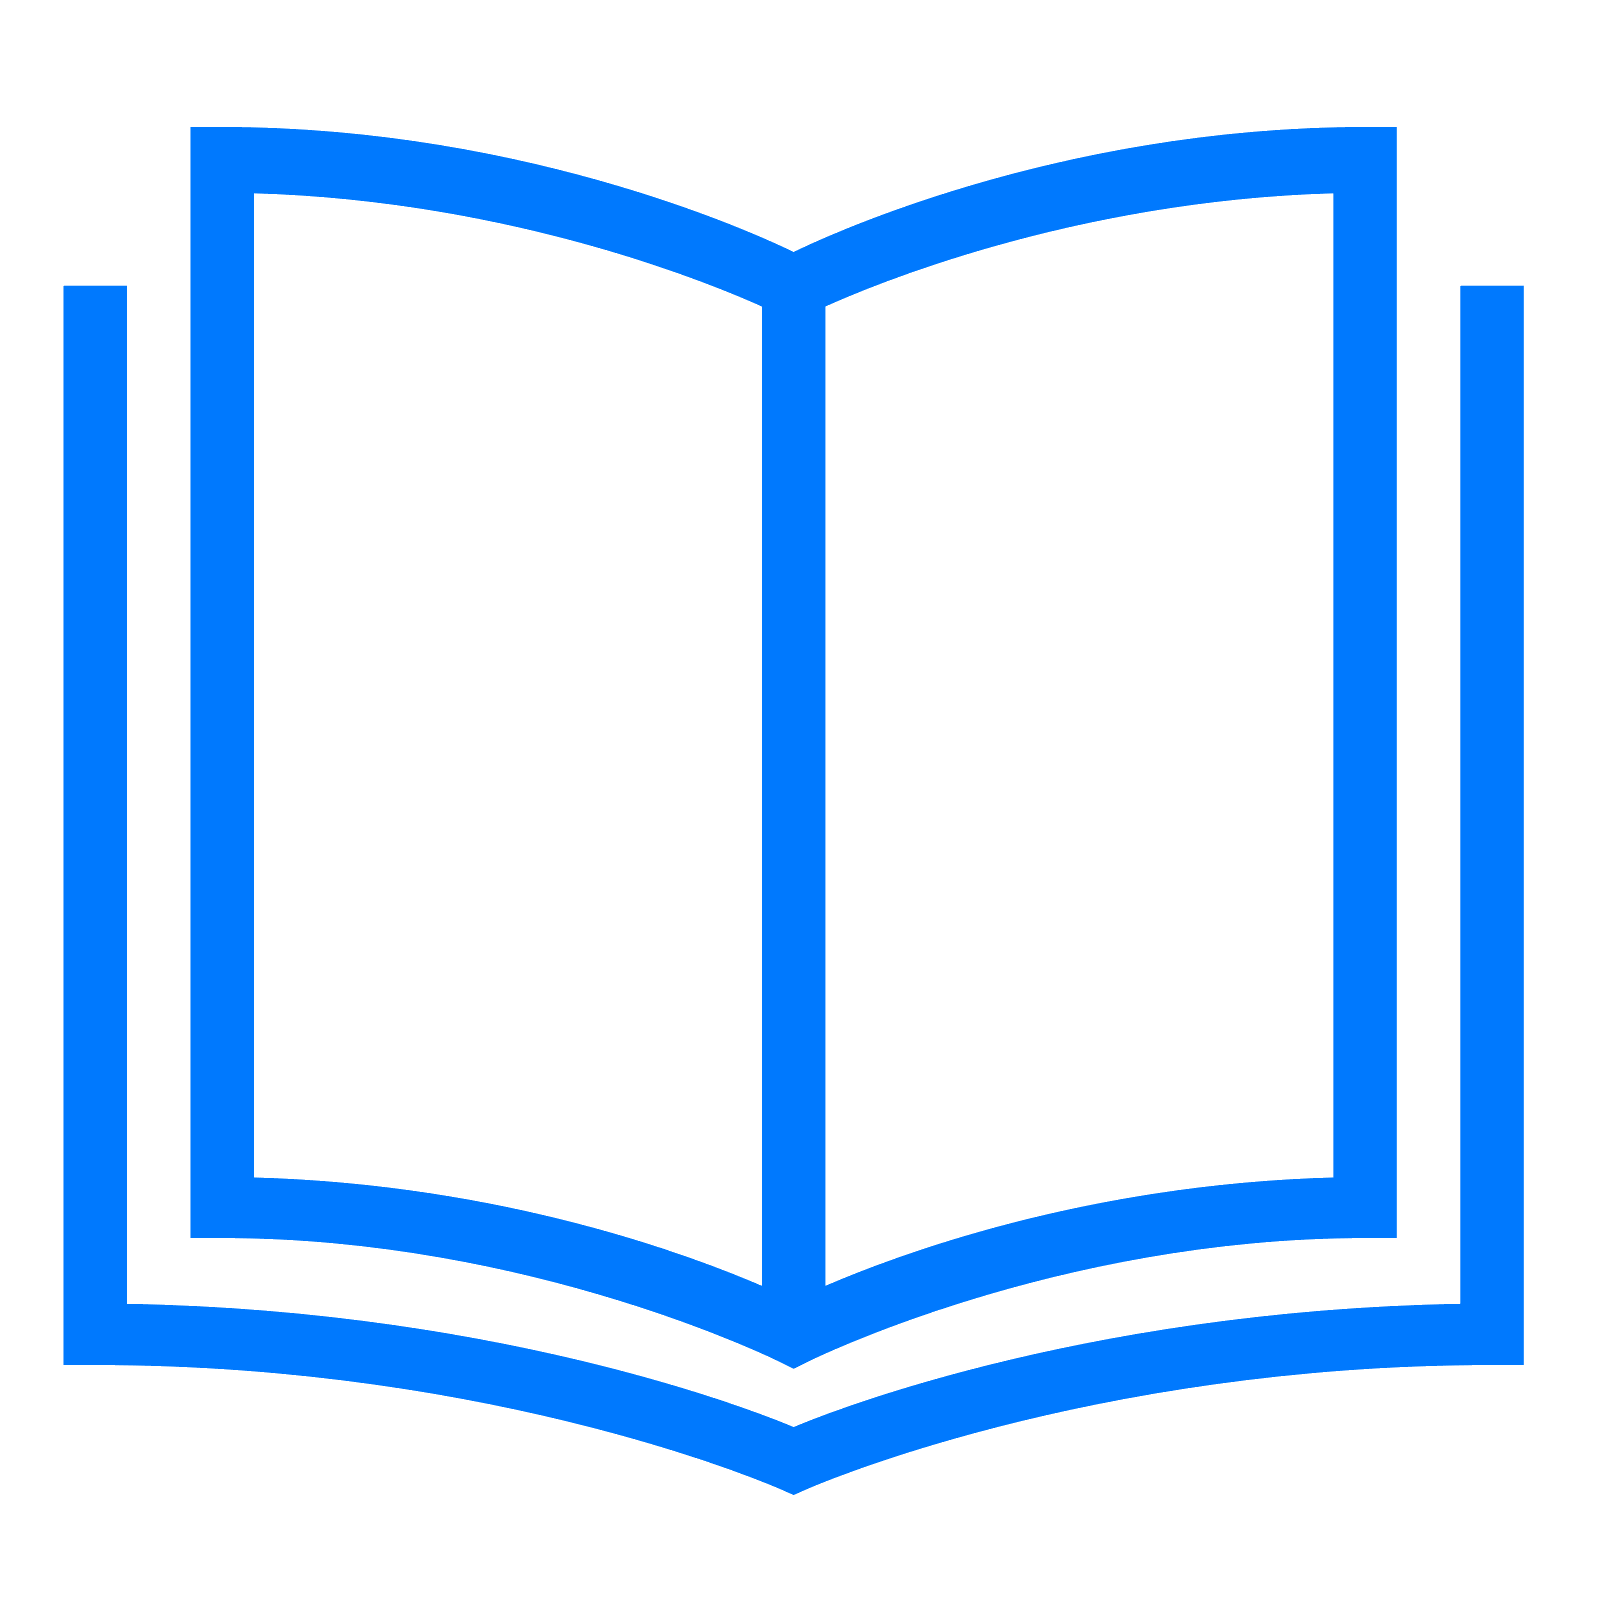 Open book with apple clipart image library stock Computer Icons Book Clip art - open book 1600*1600 transprent Png ... image library stock